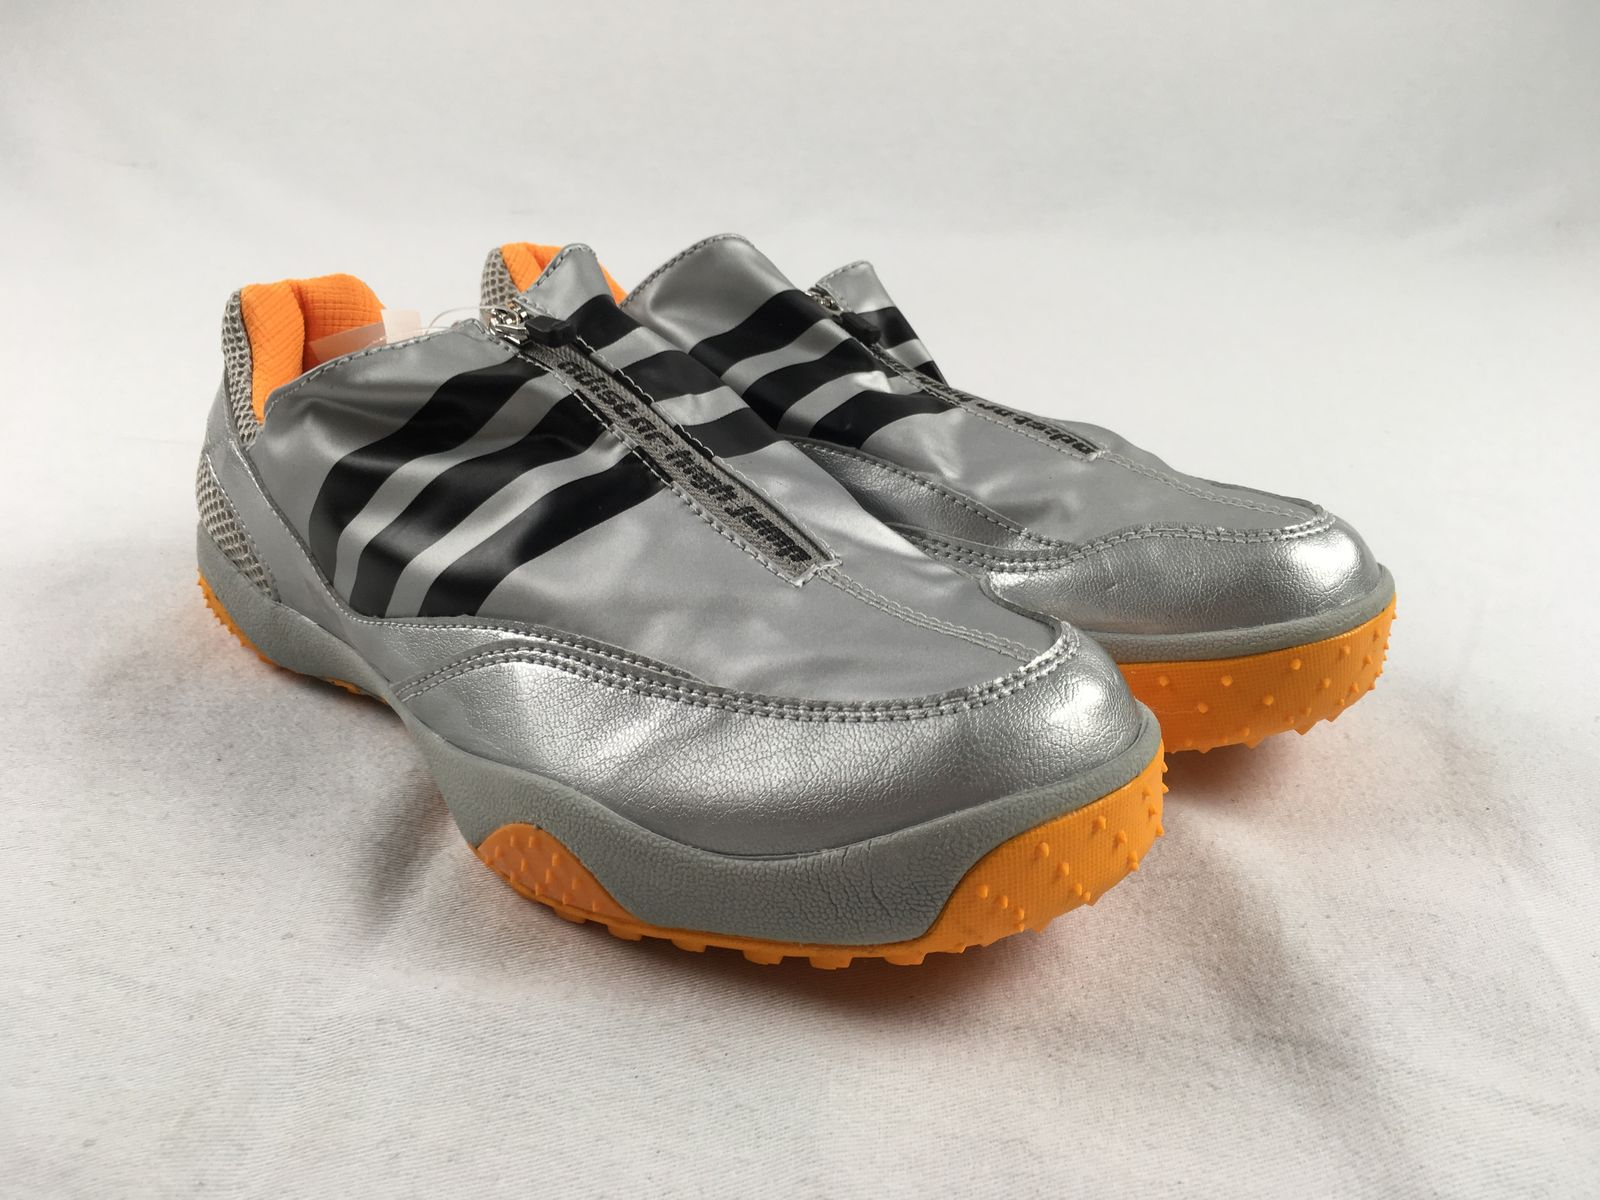 44138a266230 Details about NEW adidas adiStar High Jump - Silver Orange Cleats (Men s  Multiple Sizes)